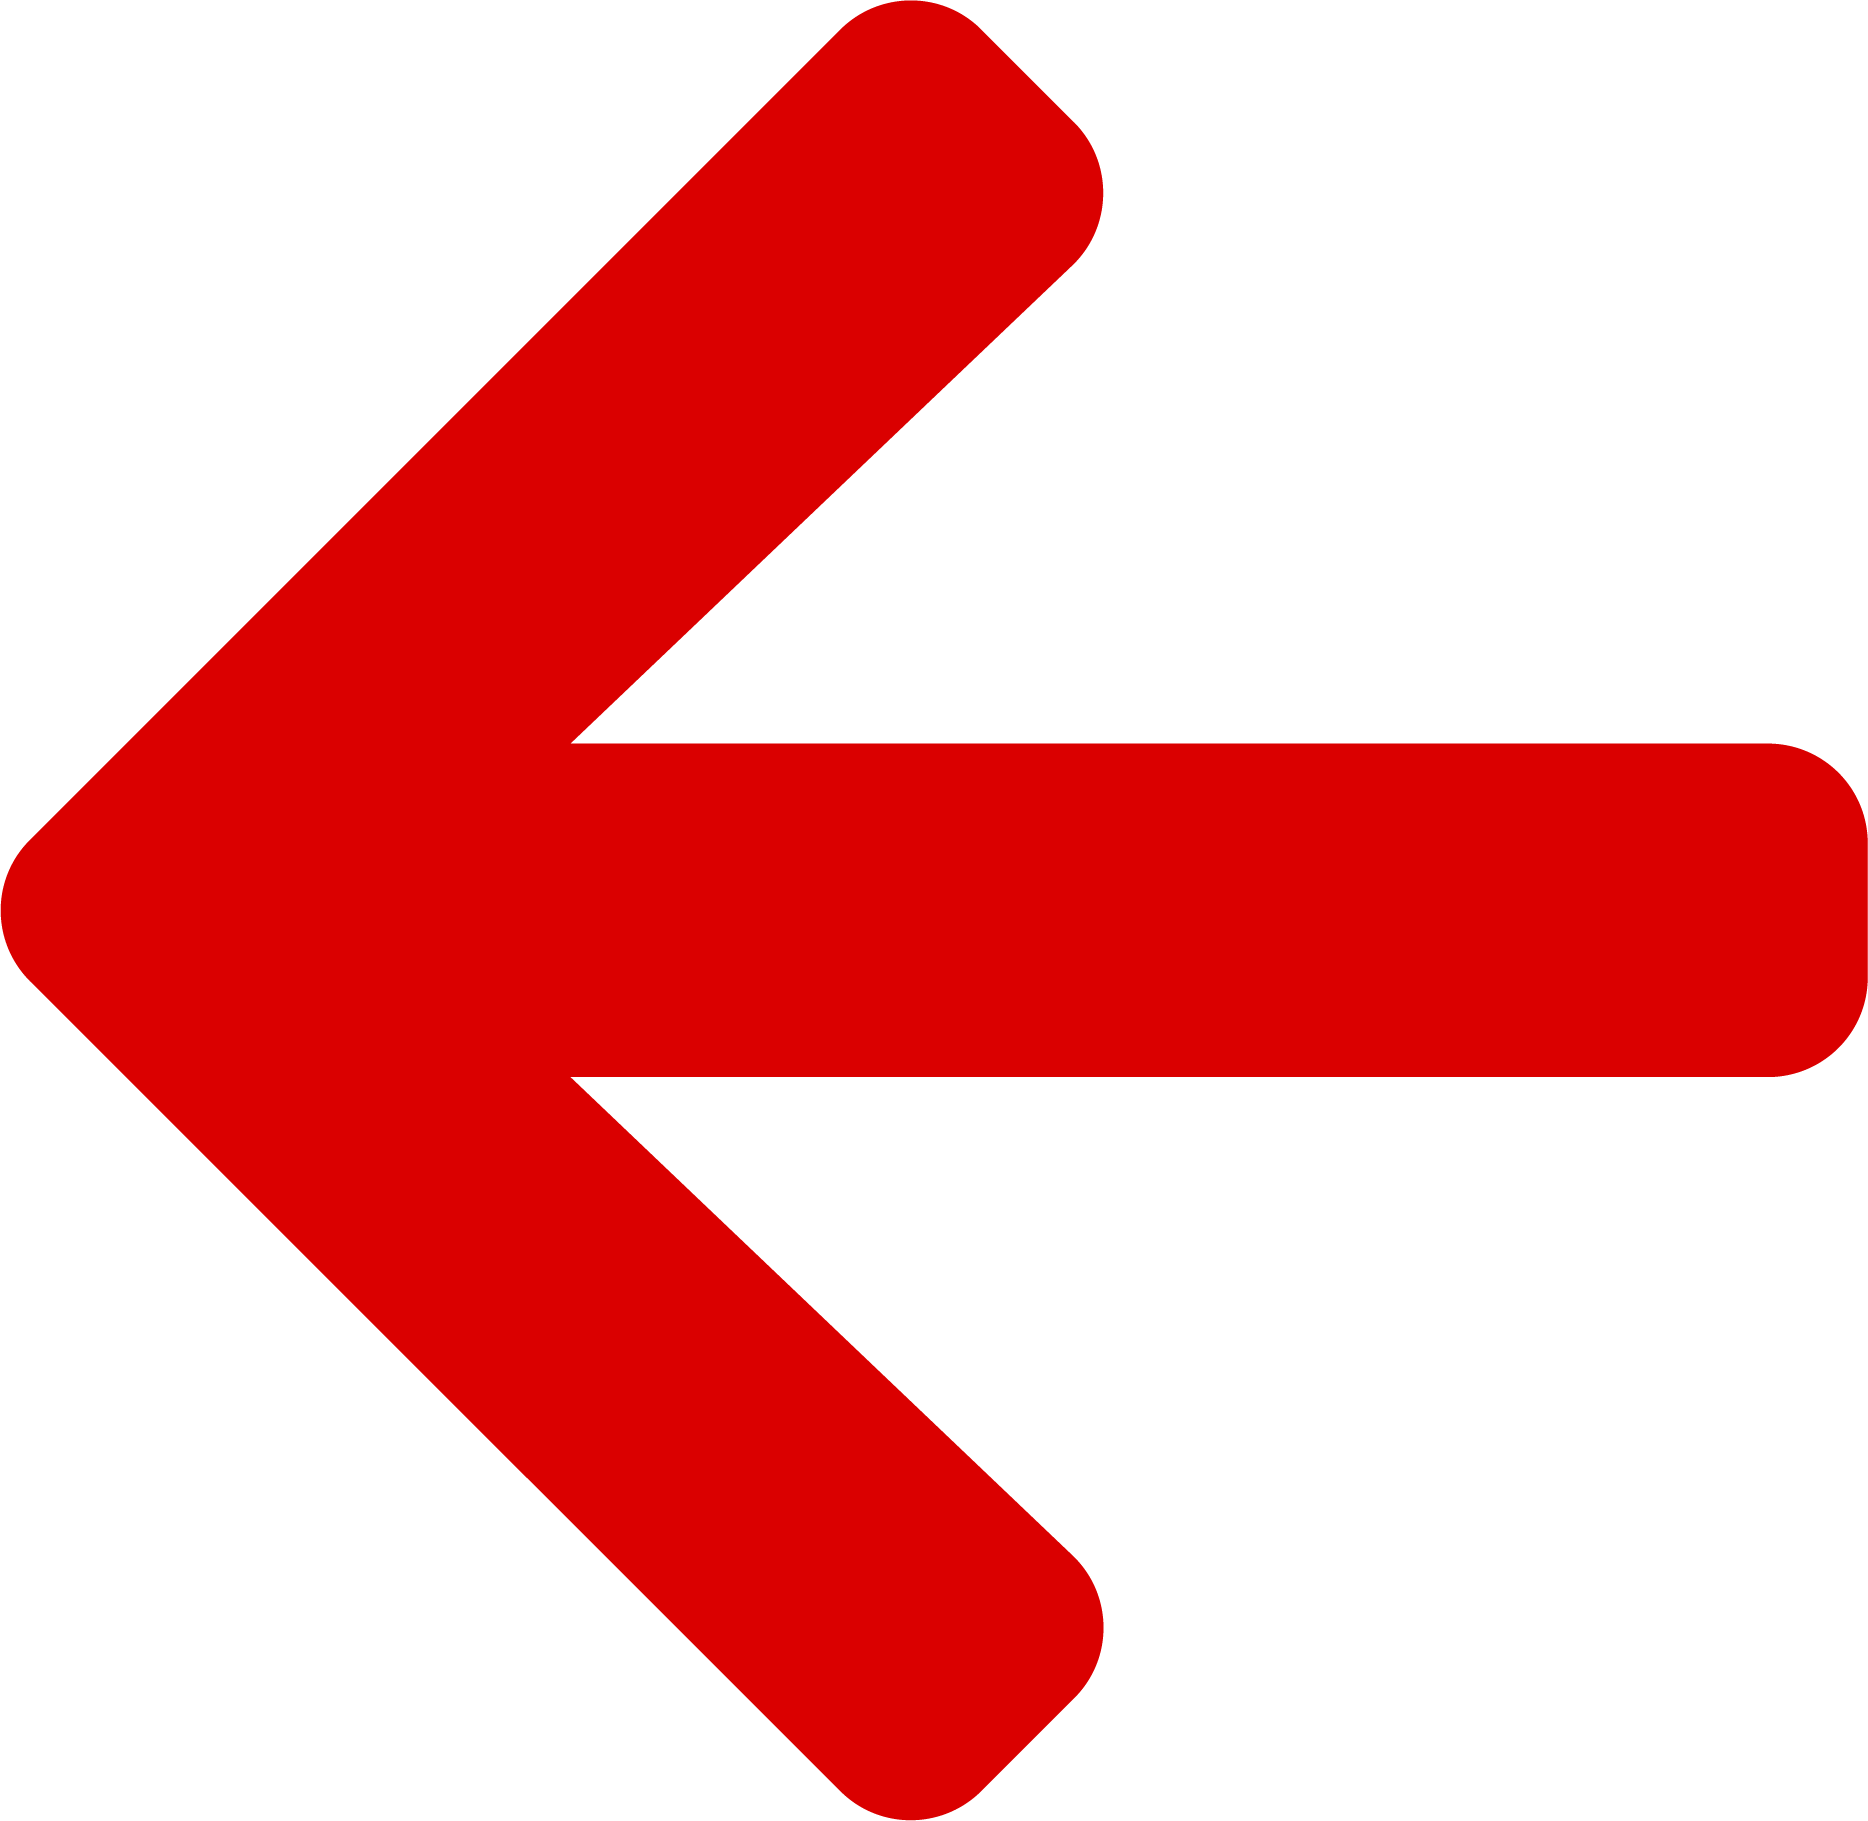 left arrow icon red